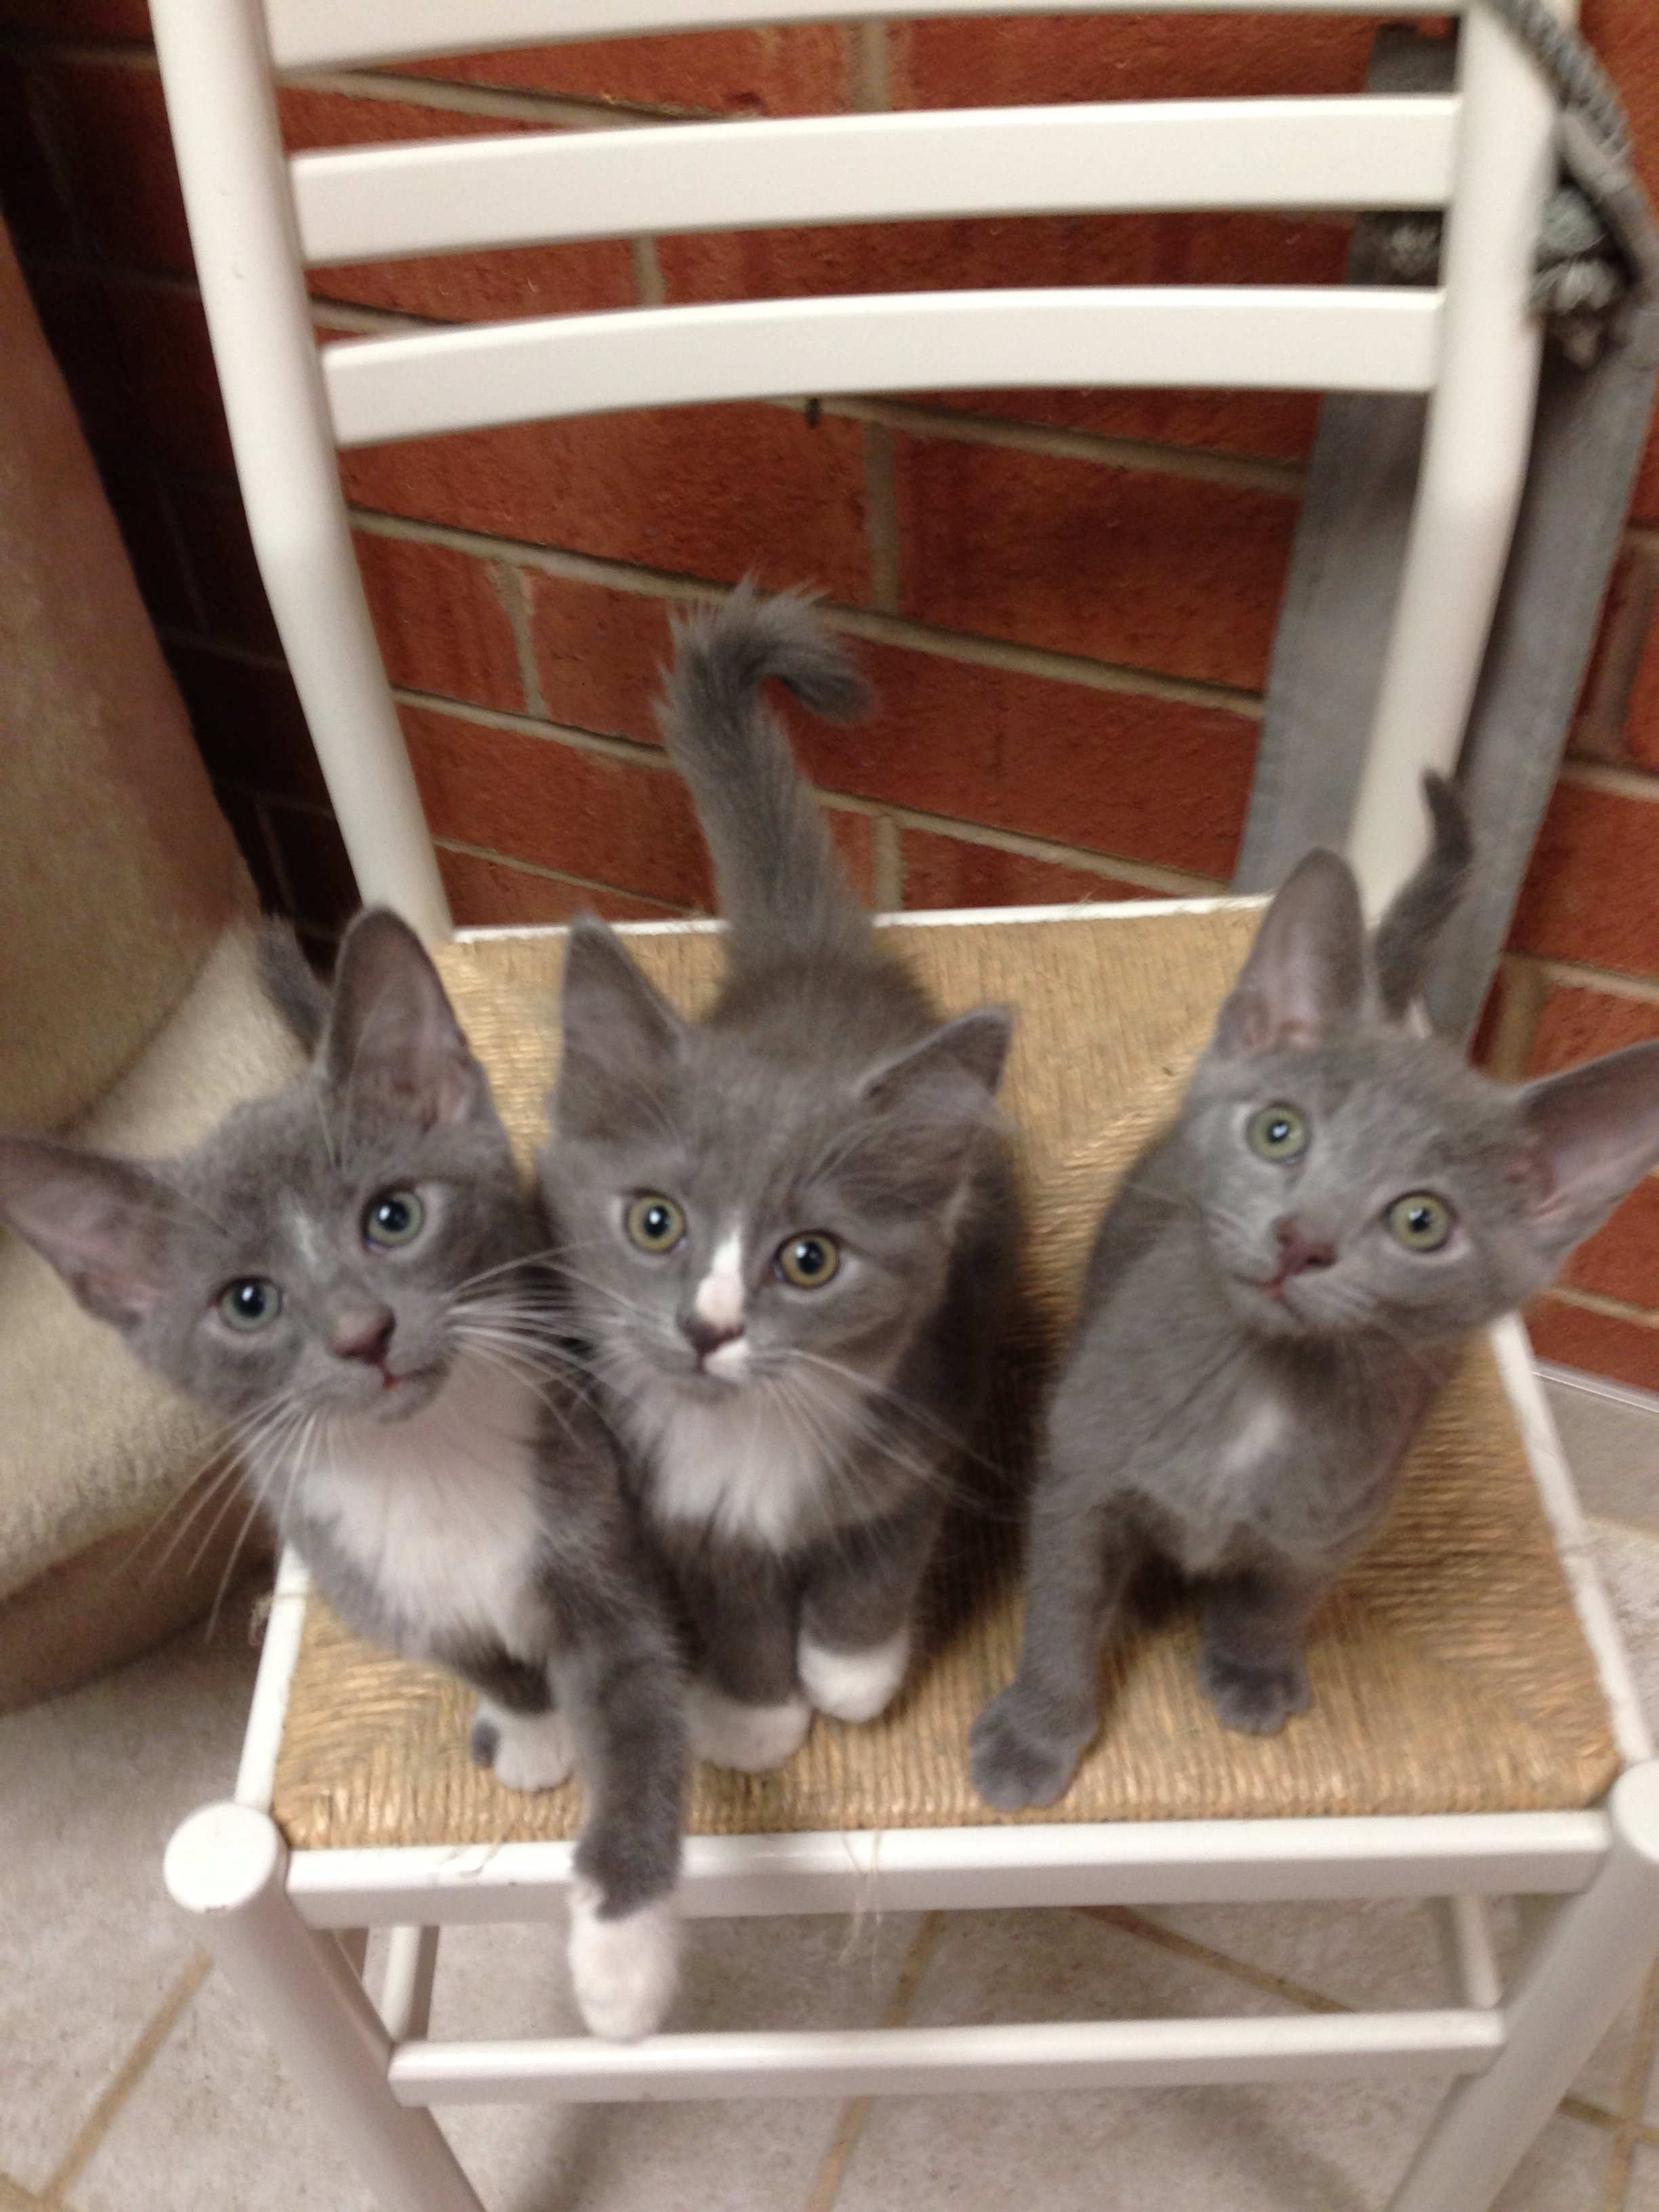 3 Gray Kittens on a chair - The Cat Clinic Of Greensboro